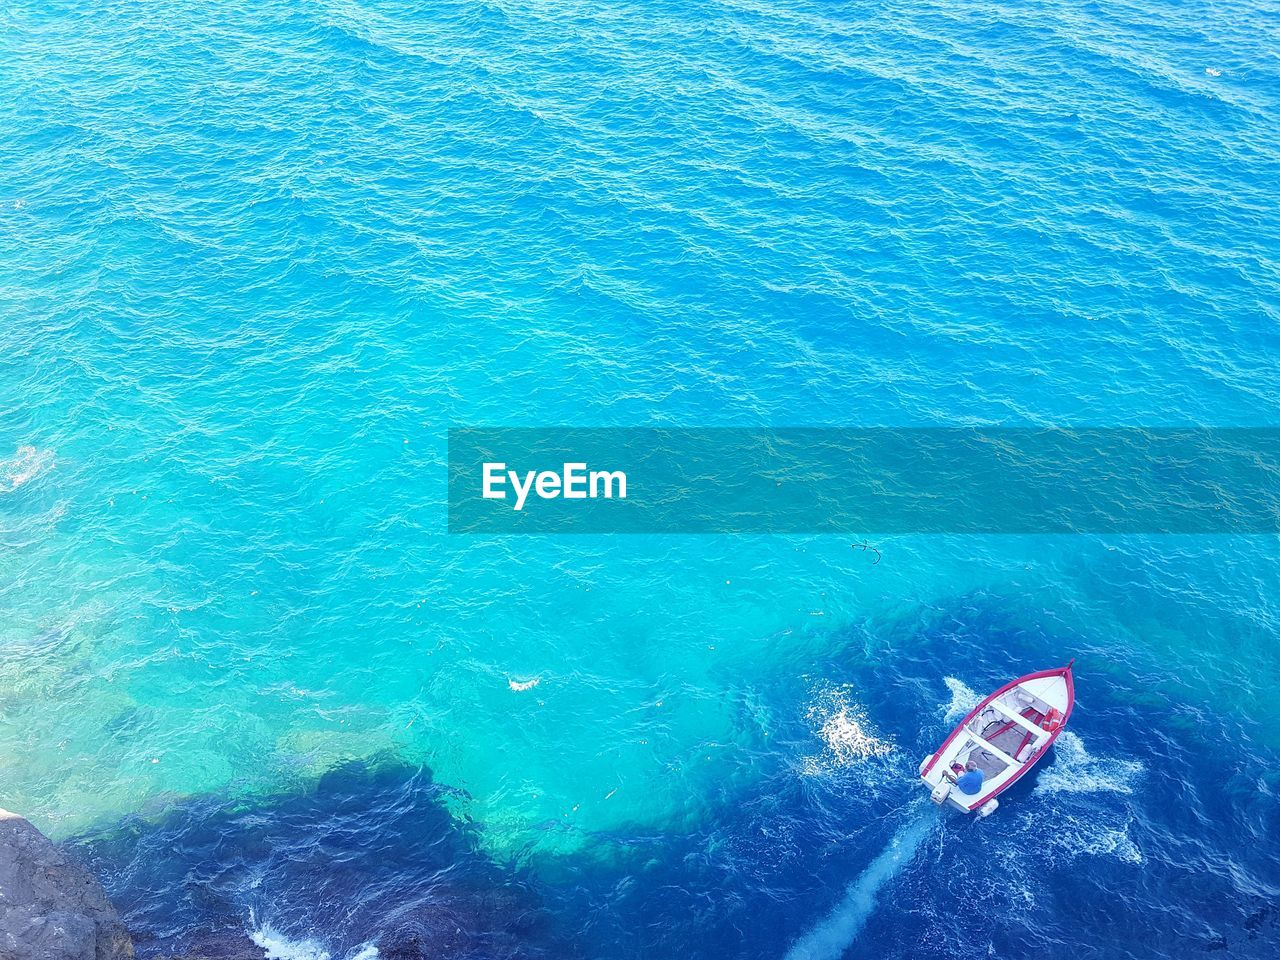 water, sea, high angle view, beauty in nature, blue, nature, day, nautical vessel, turquoise colored, no people, waterfront, outdoors, scenics - nature, wave pattern, tranquility, tranquil scene, remote, transportation, wake - water